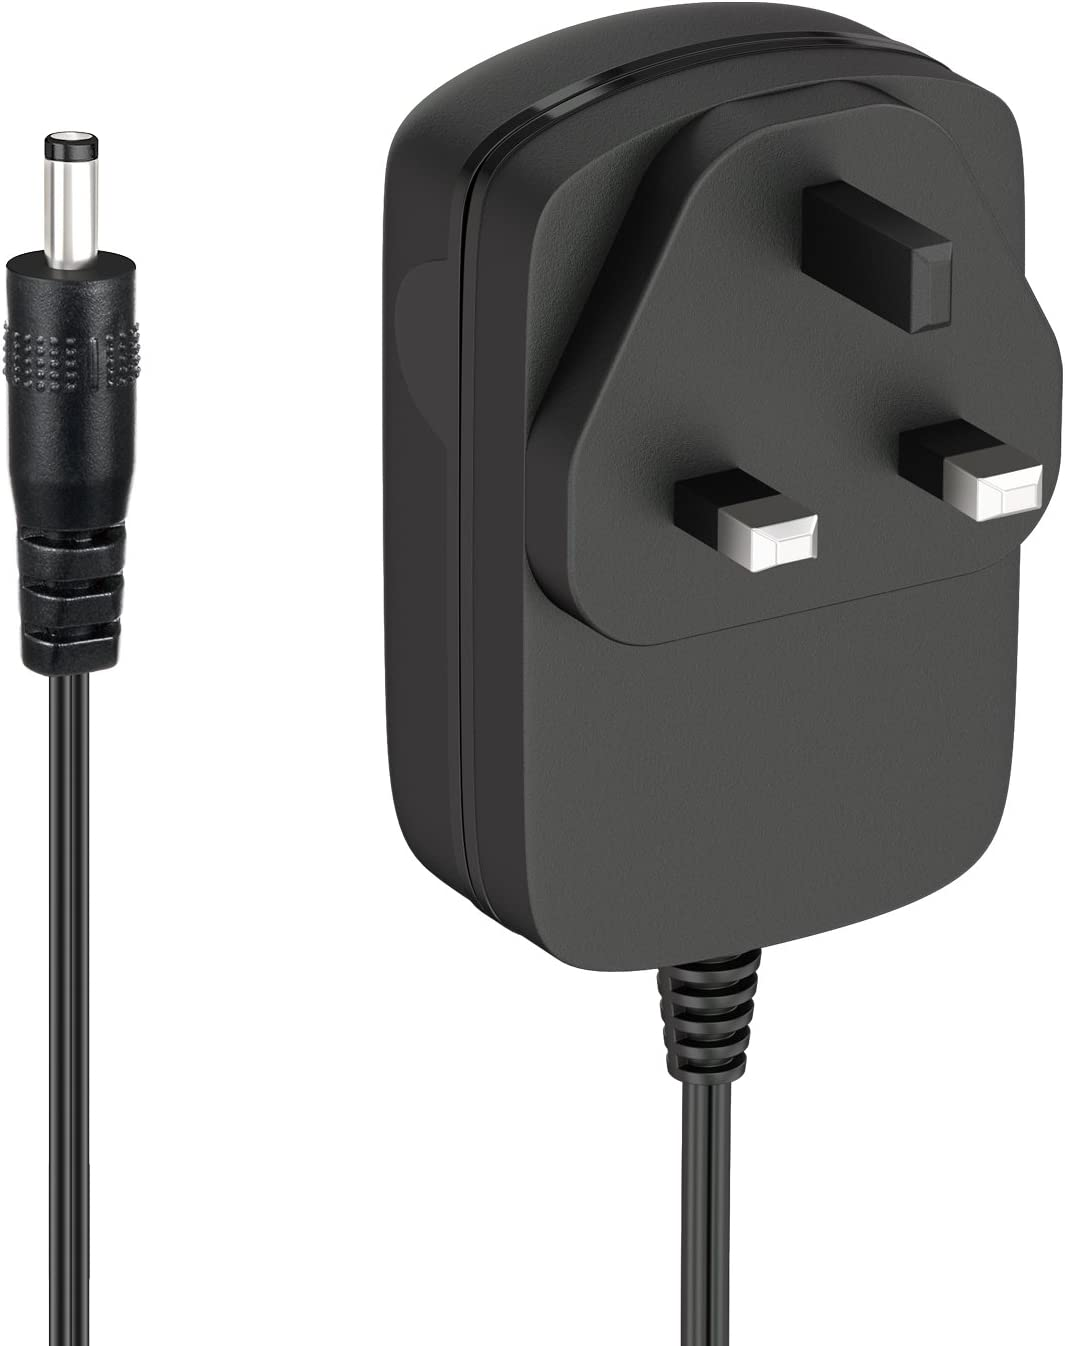 parlat LED Power Supply 24V Direct Current 12W for Our Under-Cabinet Lights BS